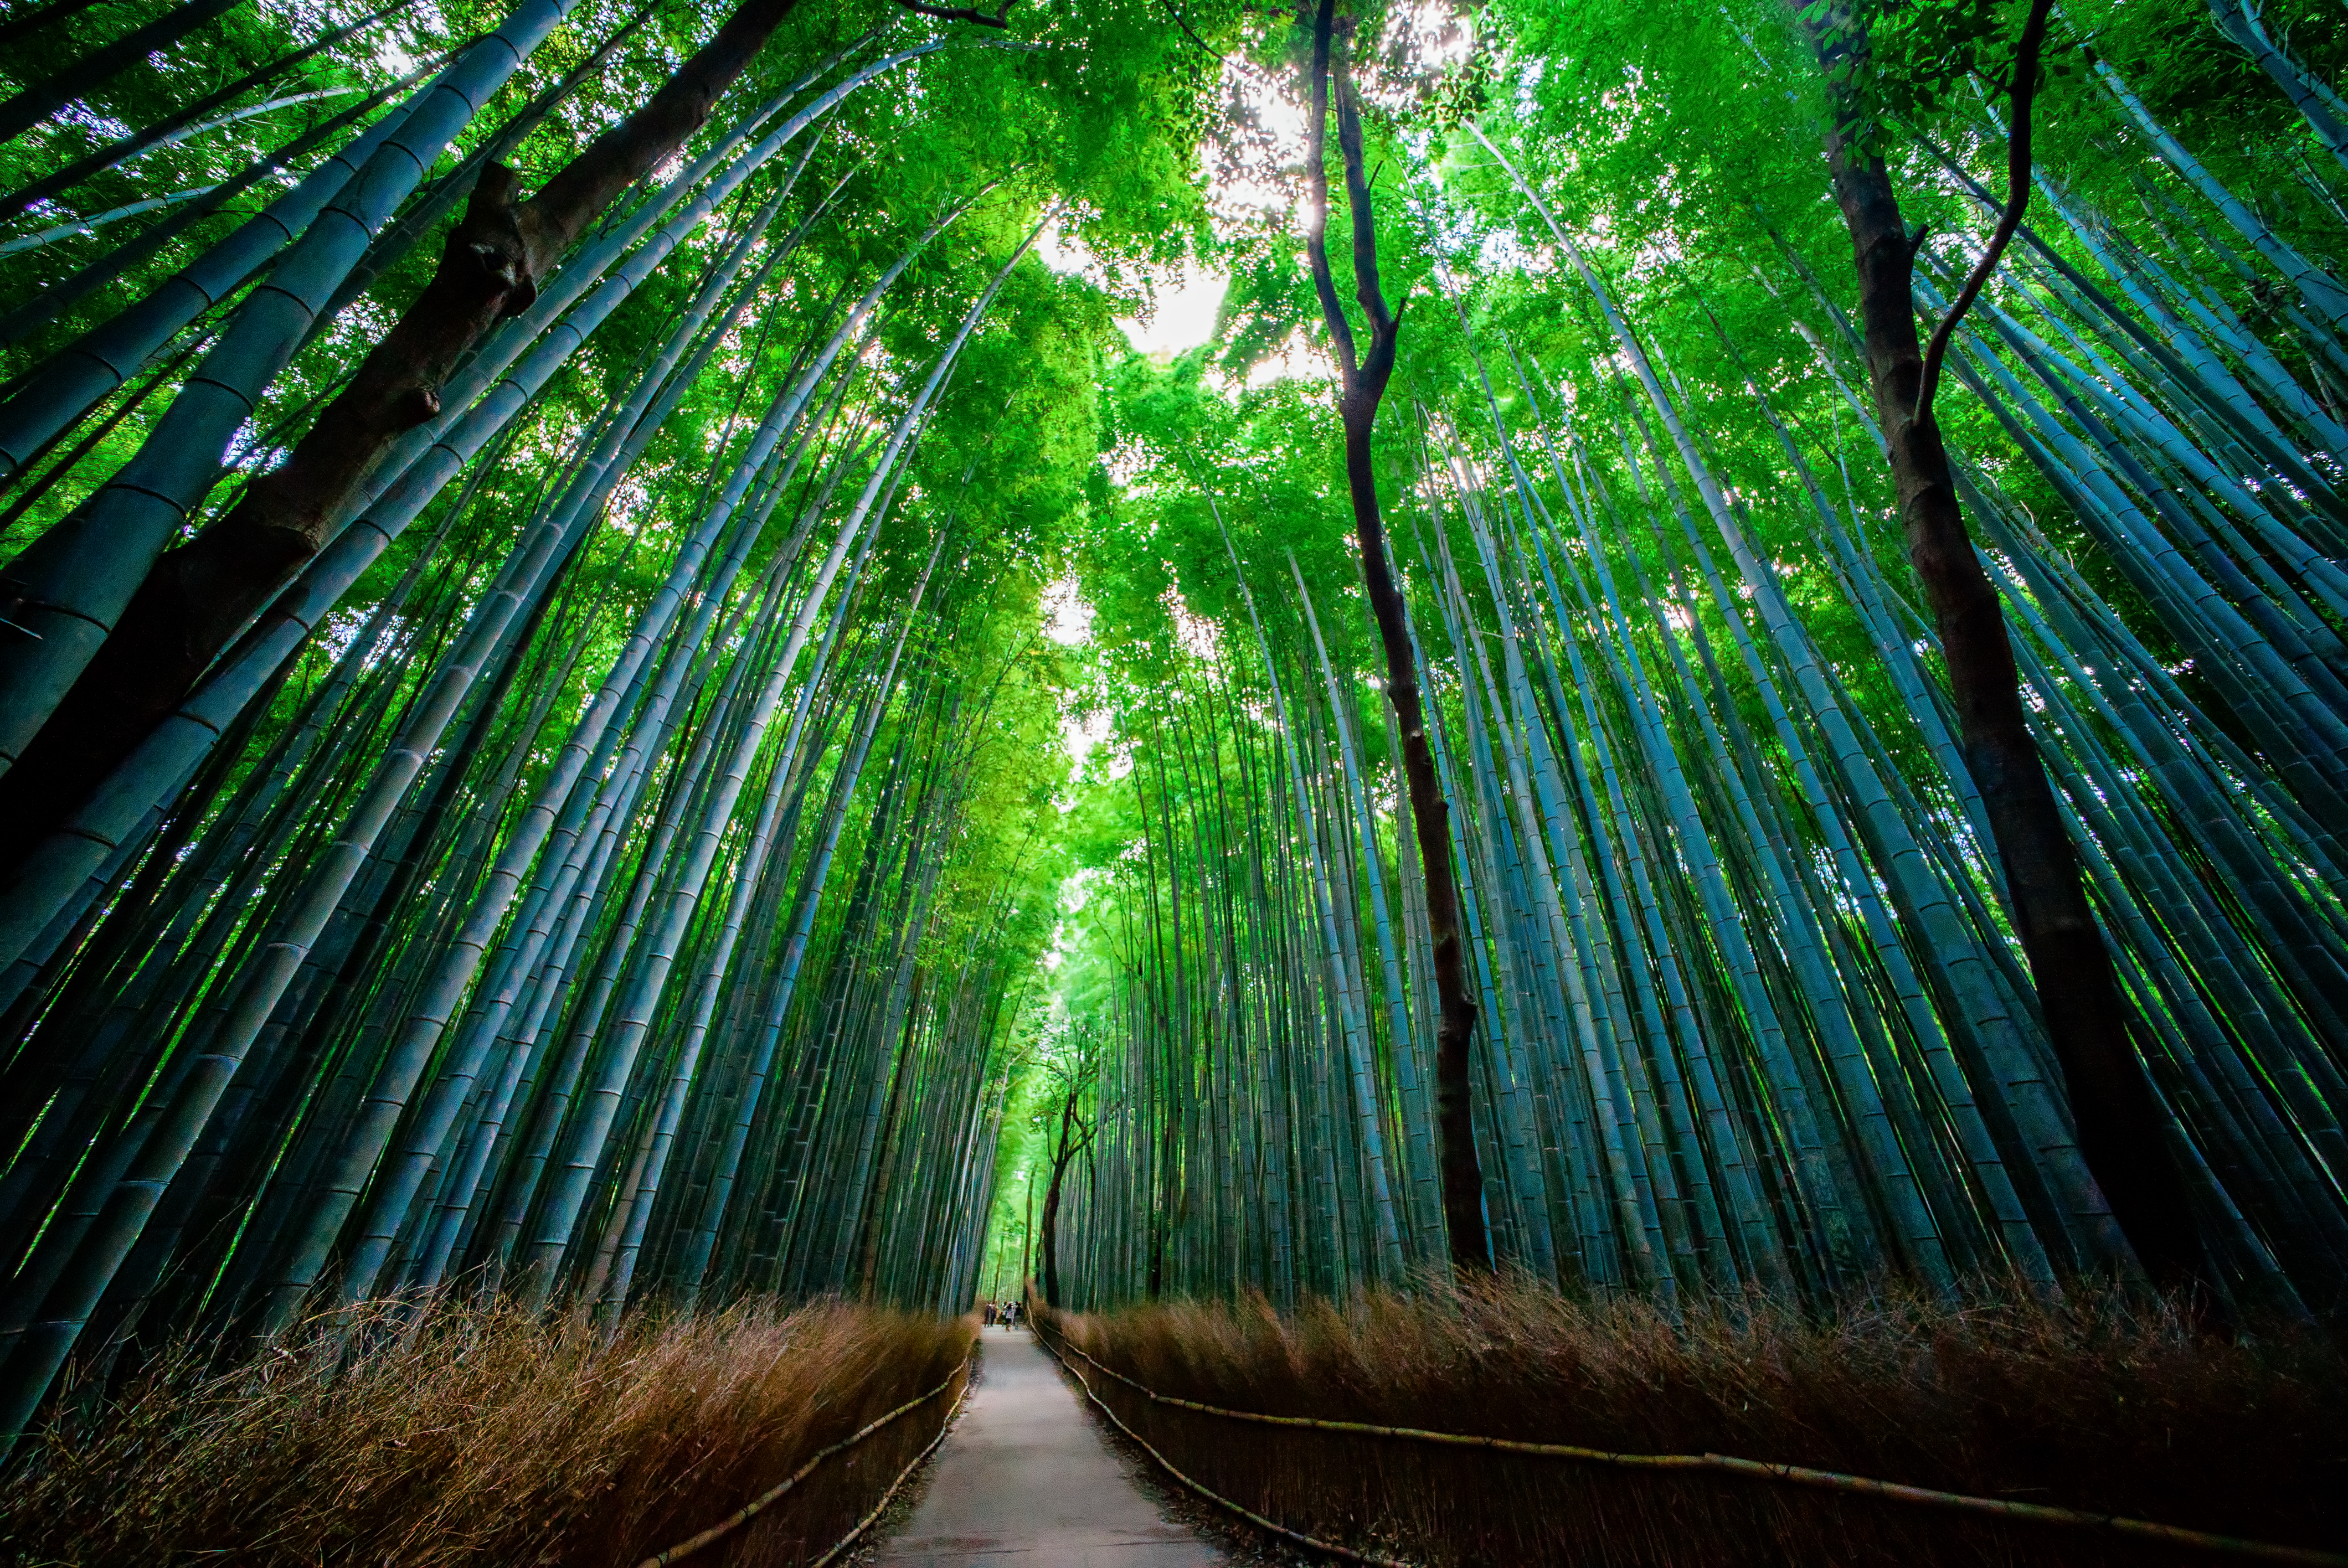 129449 download wallpaper Nature, Bamboo, Forest, Trees, Bottom View screensavers and pictures for free